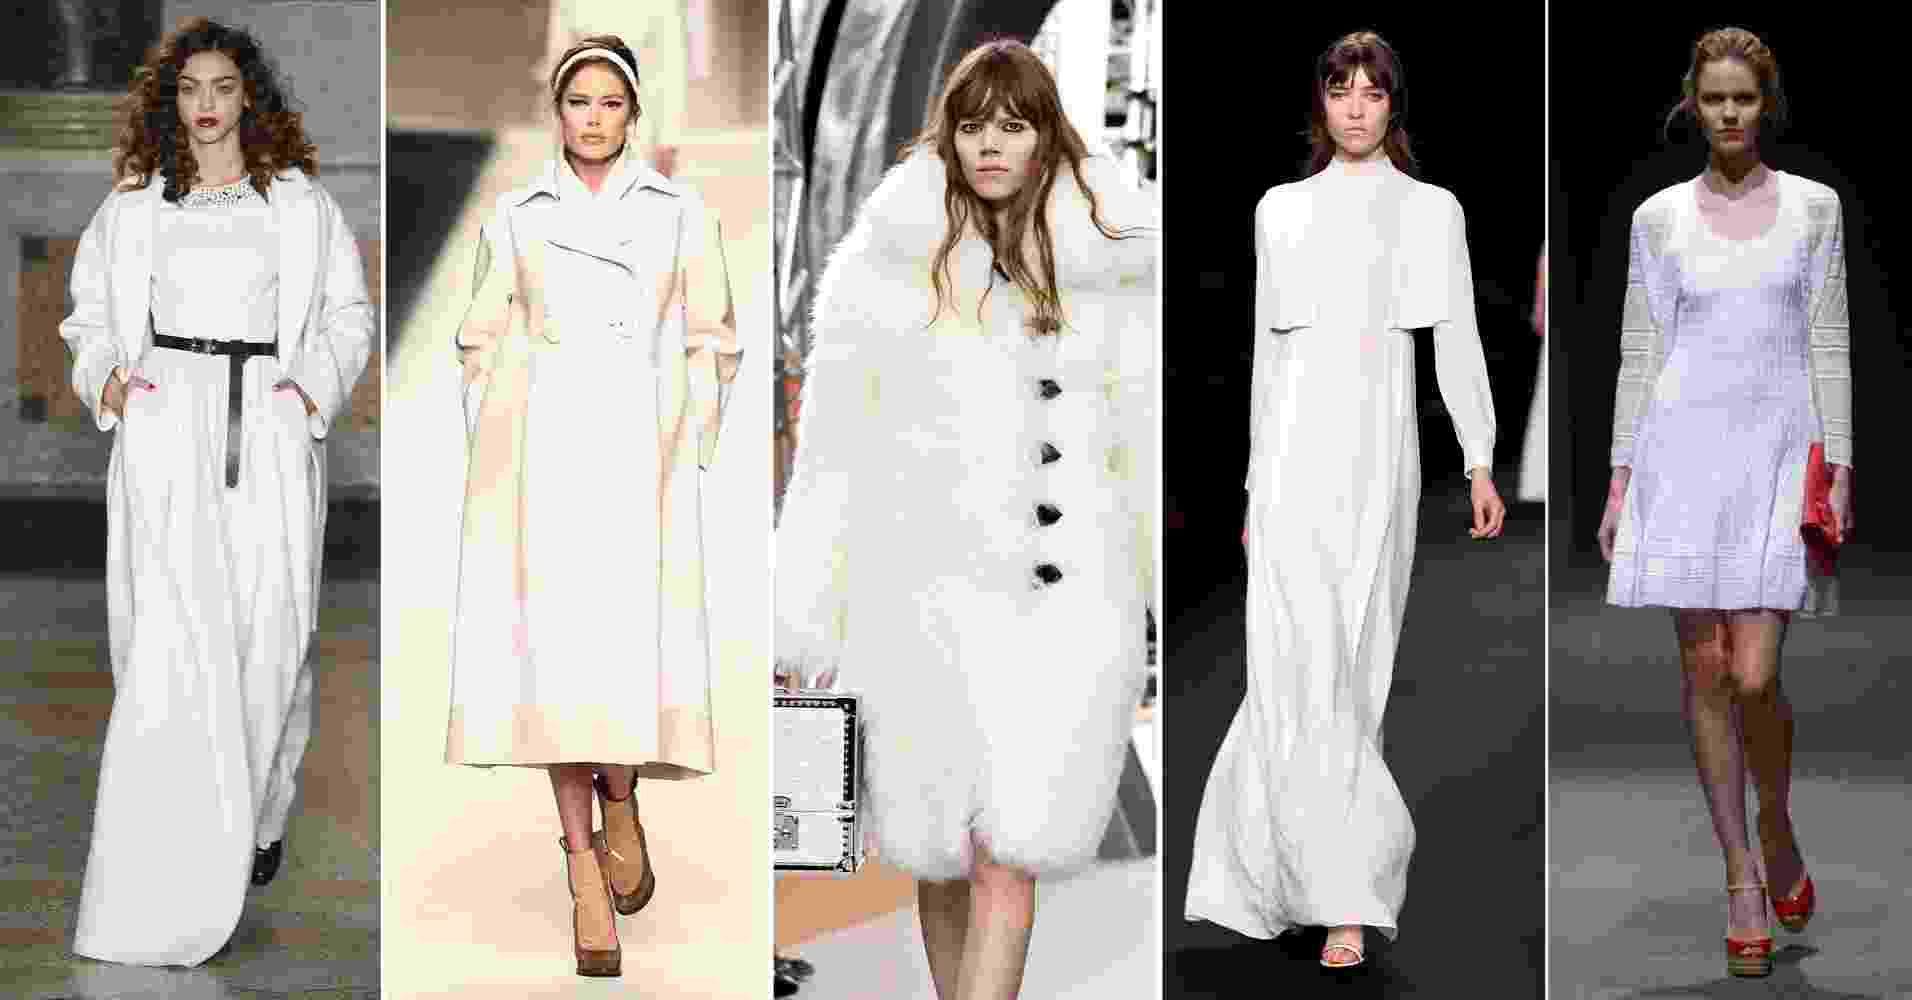 Abre - Moda - Look total branco no inverno - Getty Images/MontagemUOL